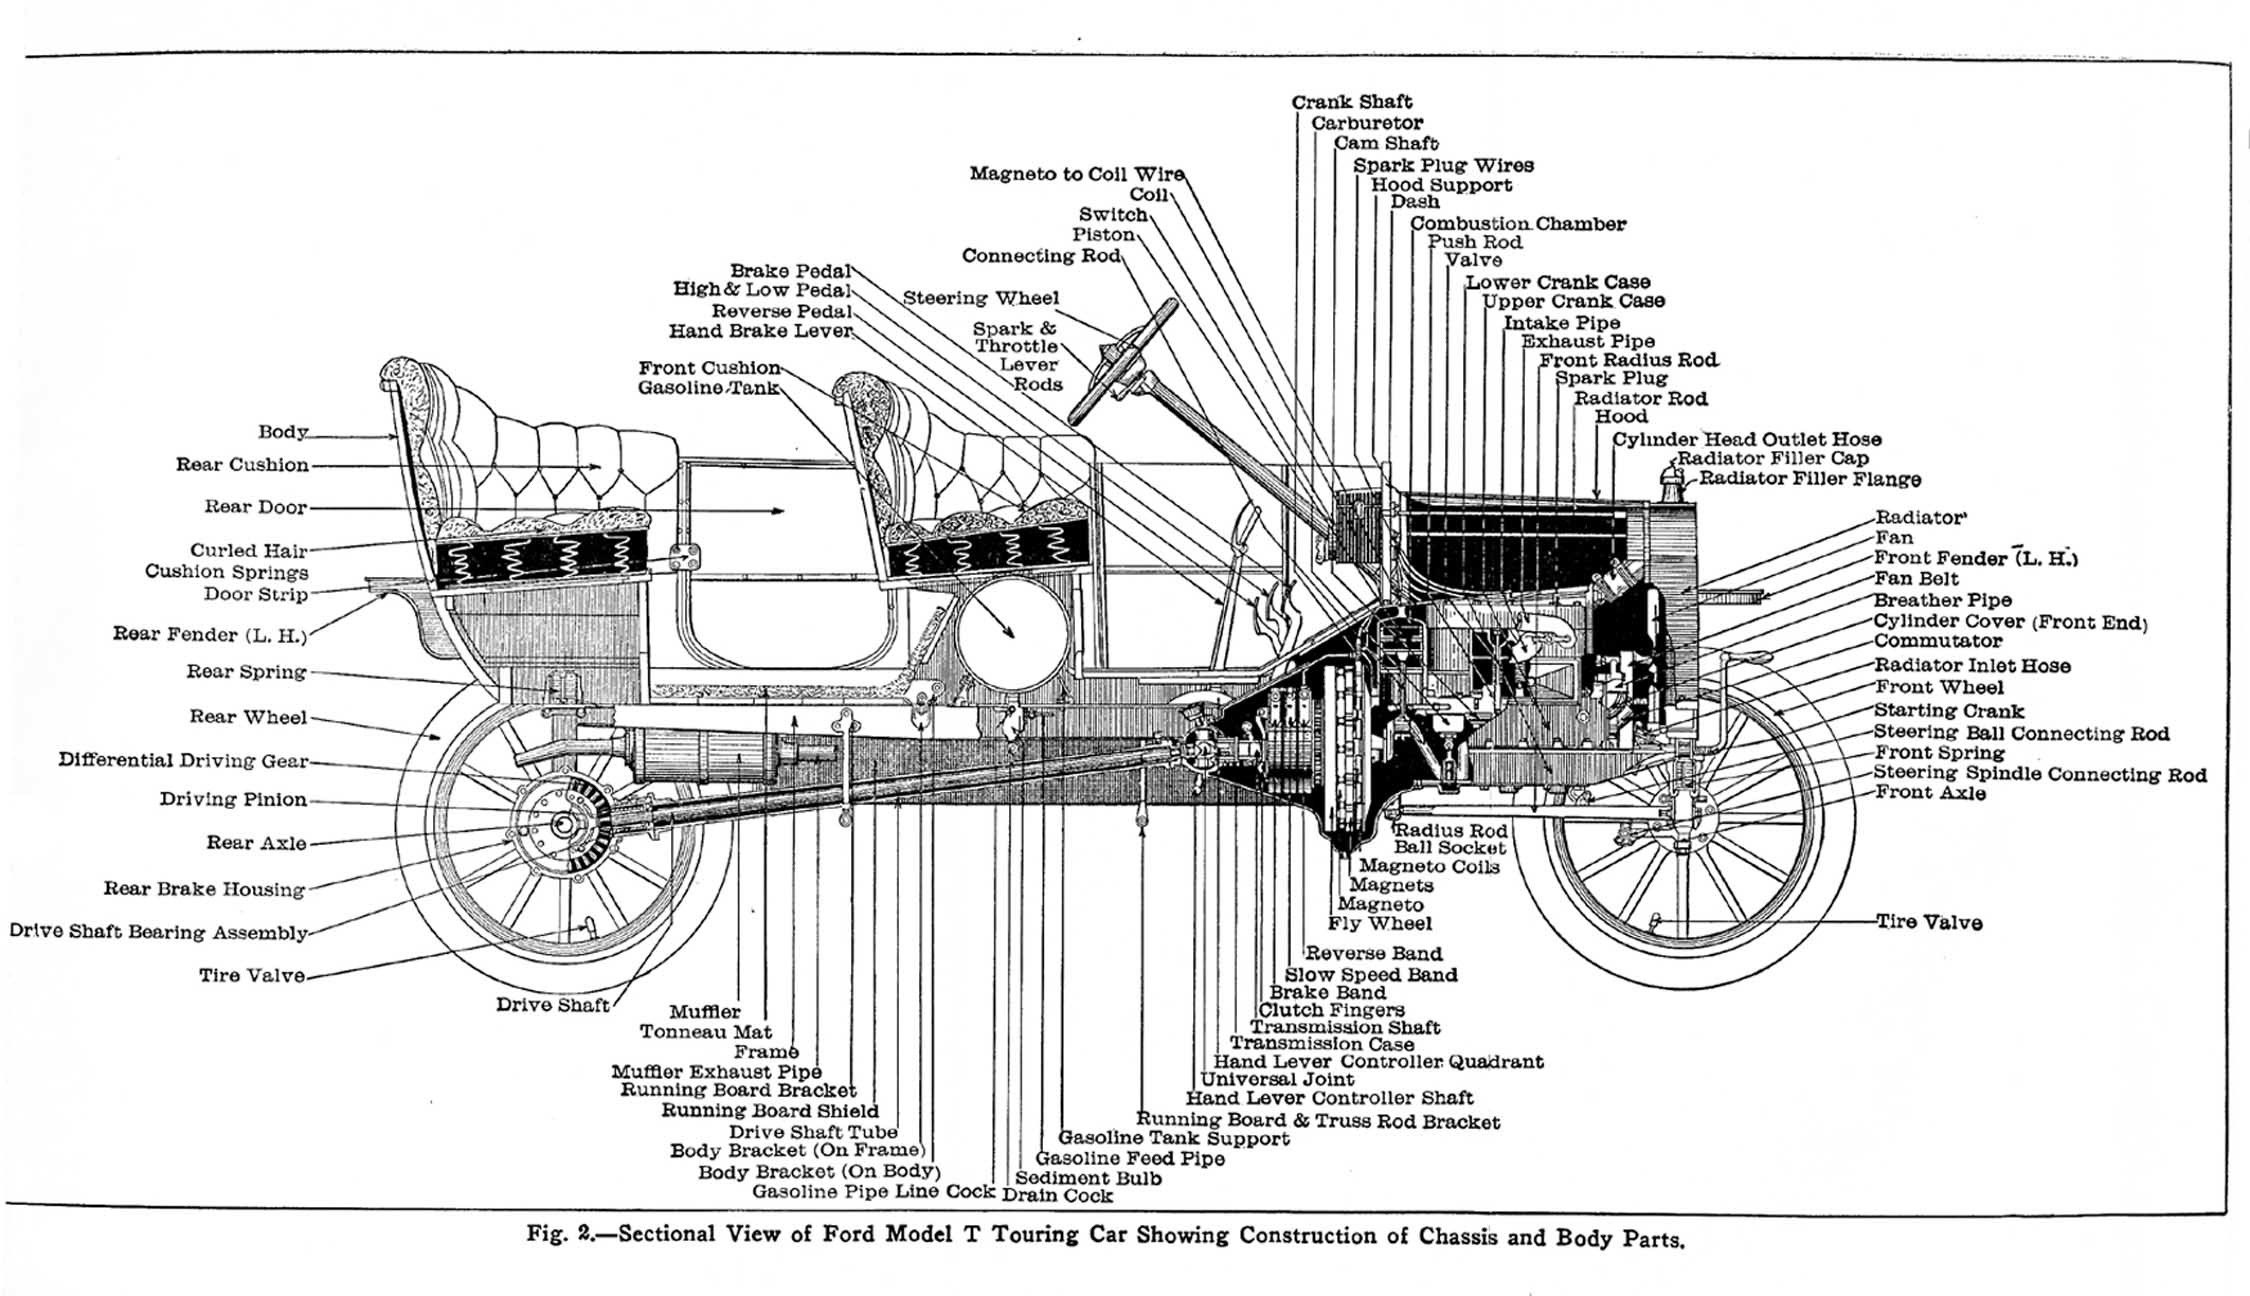 1917 chevrolet series f5 - information and photos